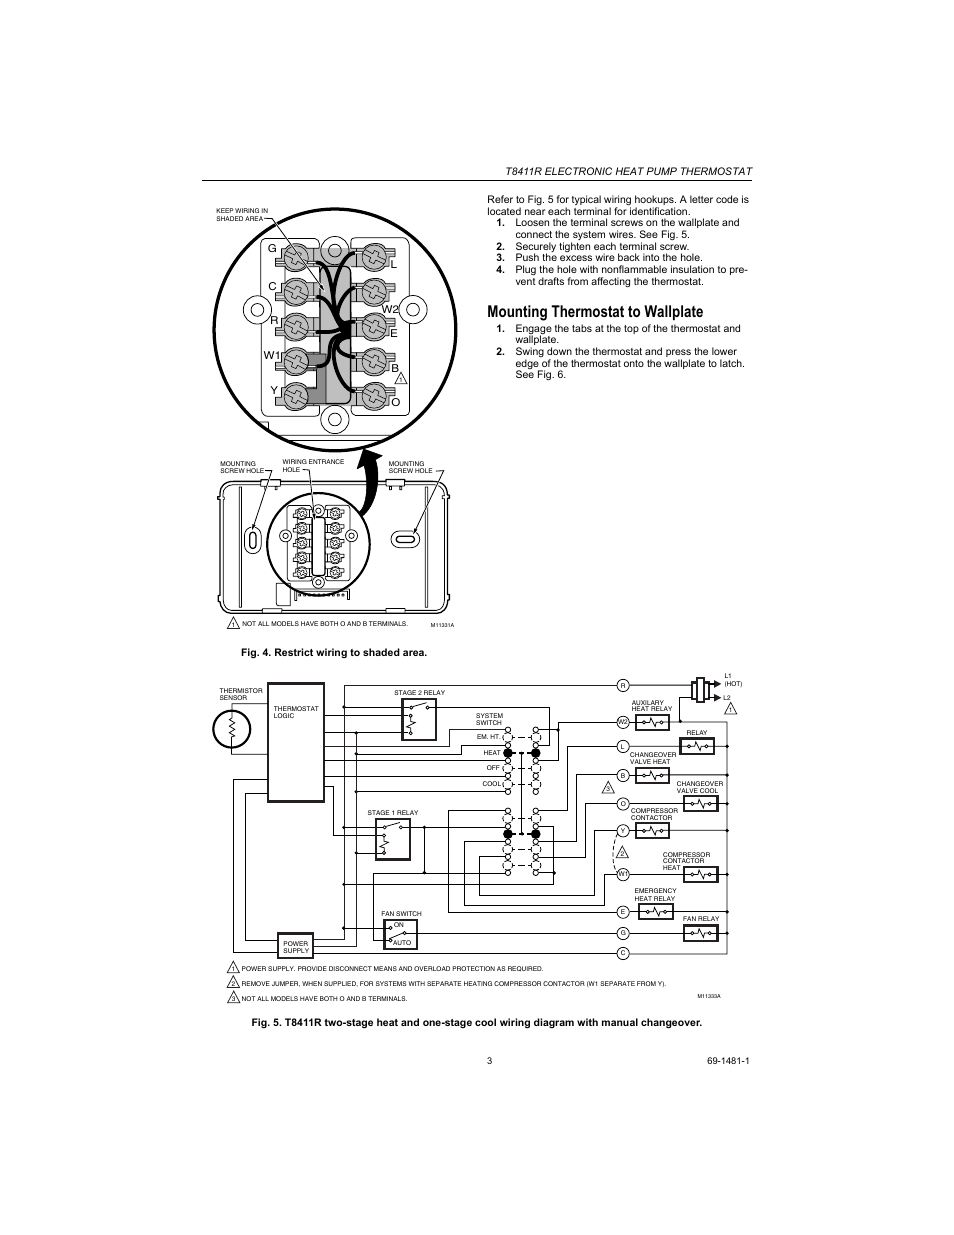 Honeywell Thermostat Wiring Diagram 9580 Honeywell Gas